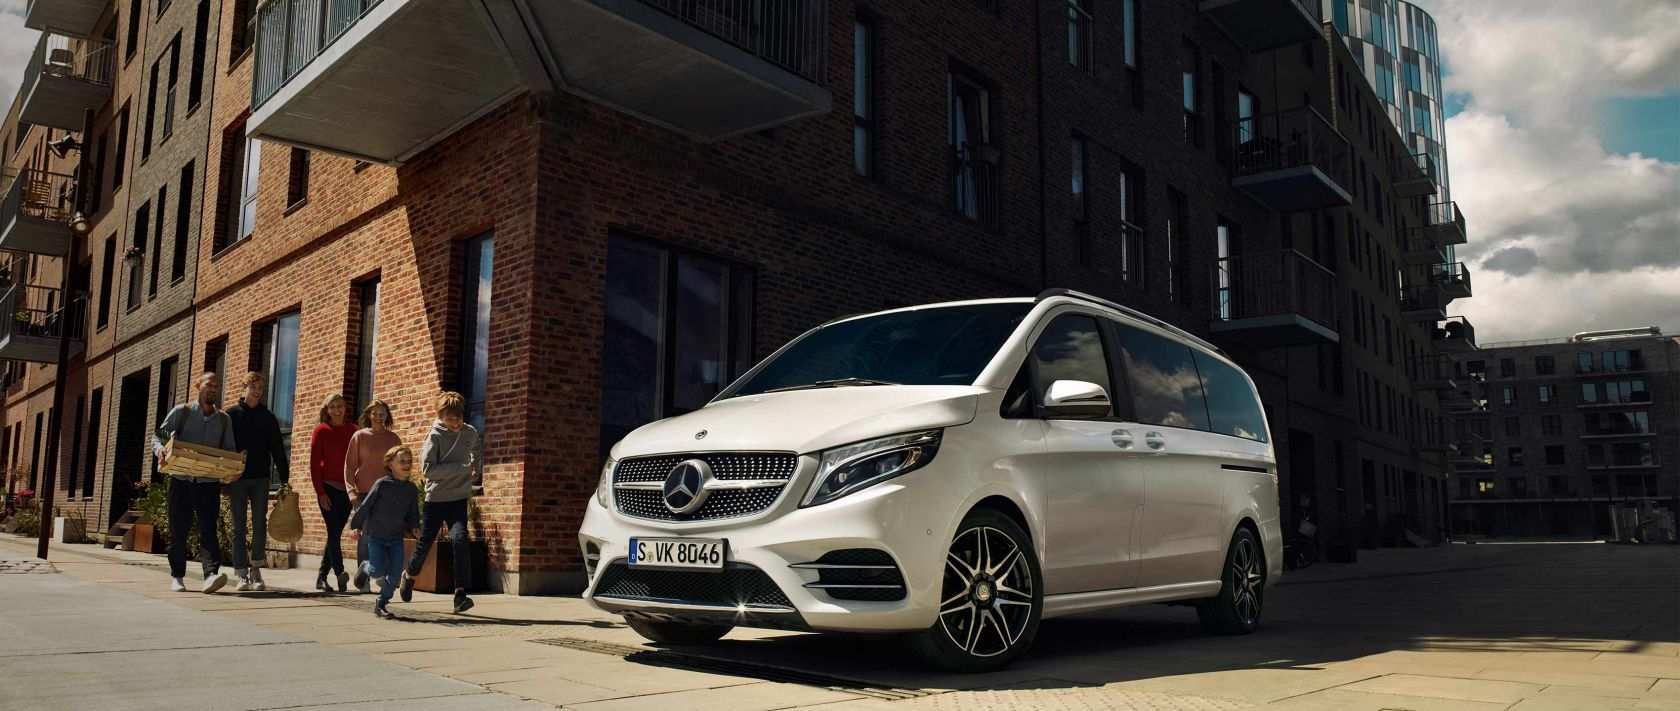 76 Concept of Best V Class Mercedes 2019 Price And Review Performance for Best V Class Mercedes 2019 Price And Review